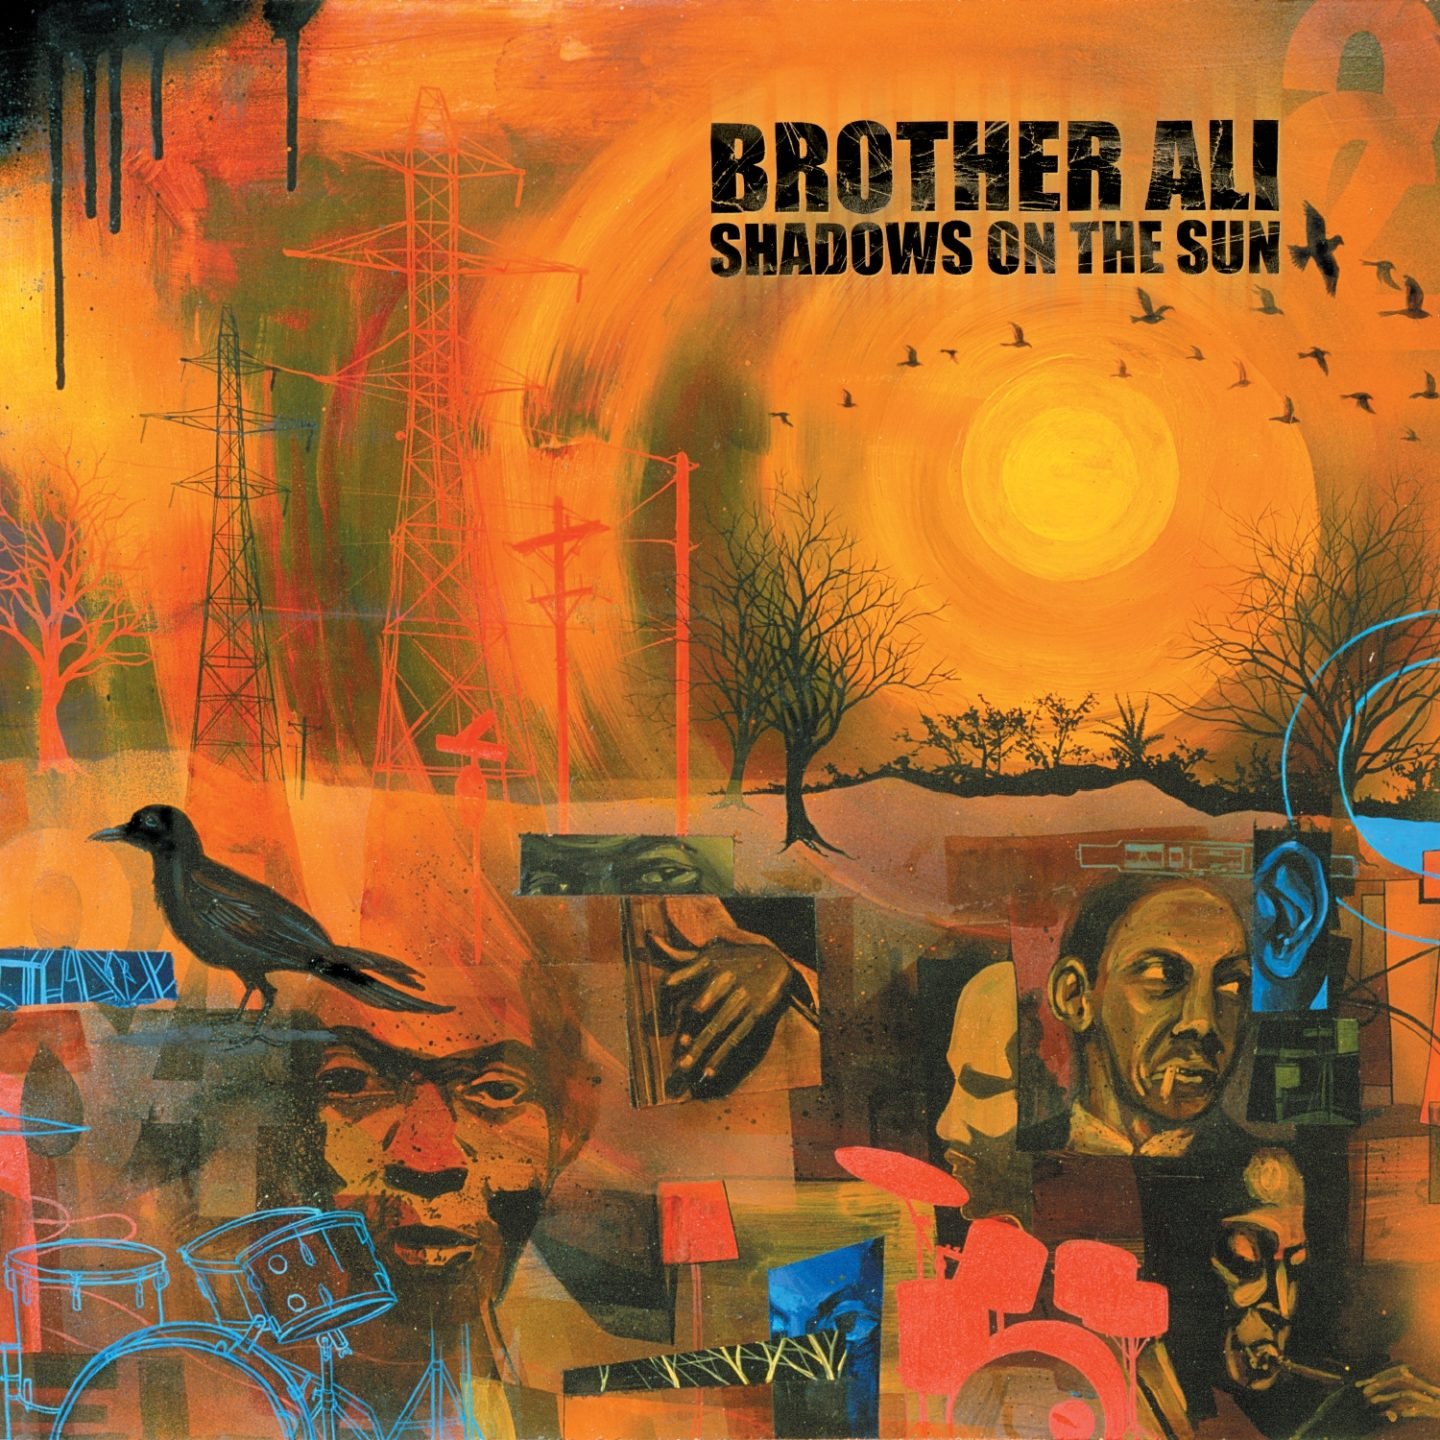 Brother Ali Shadows On The Sun